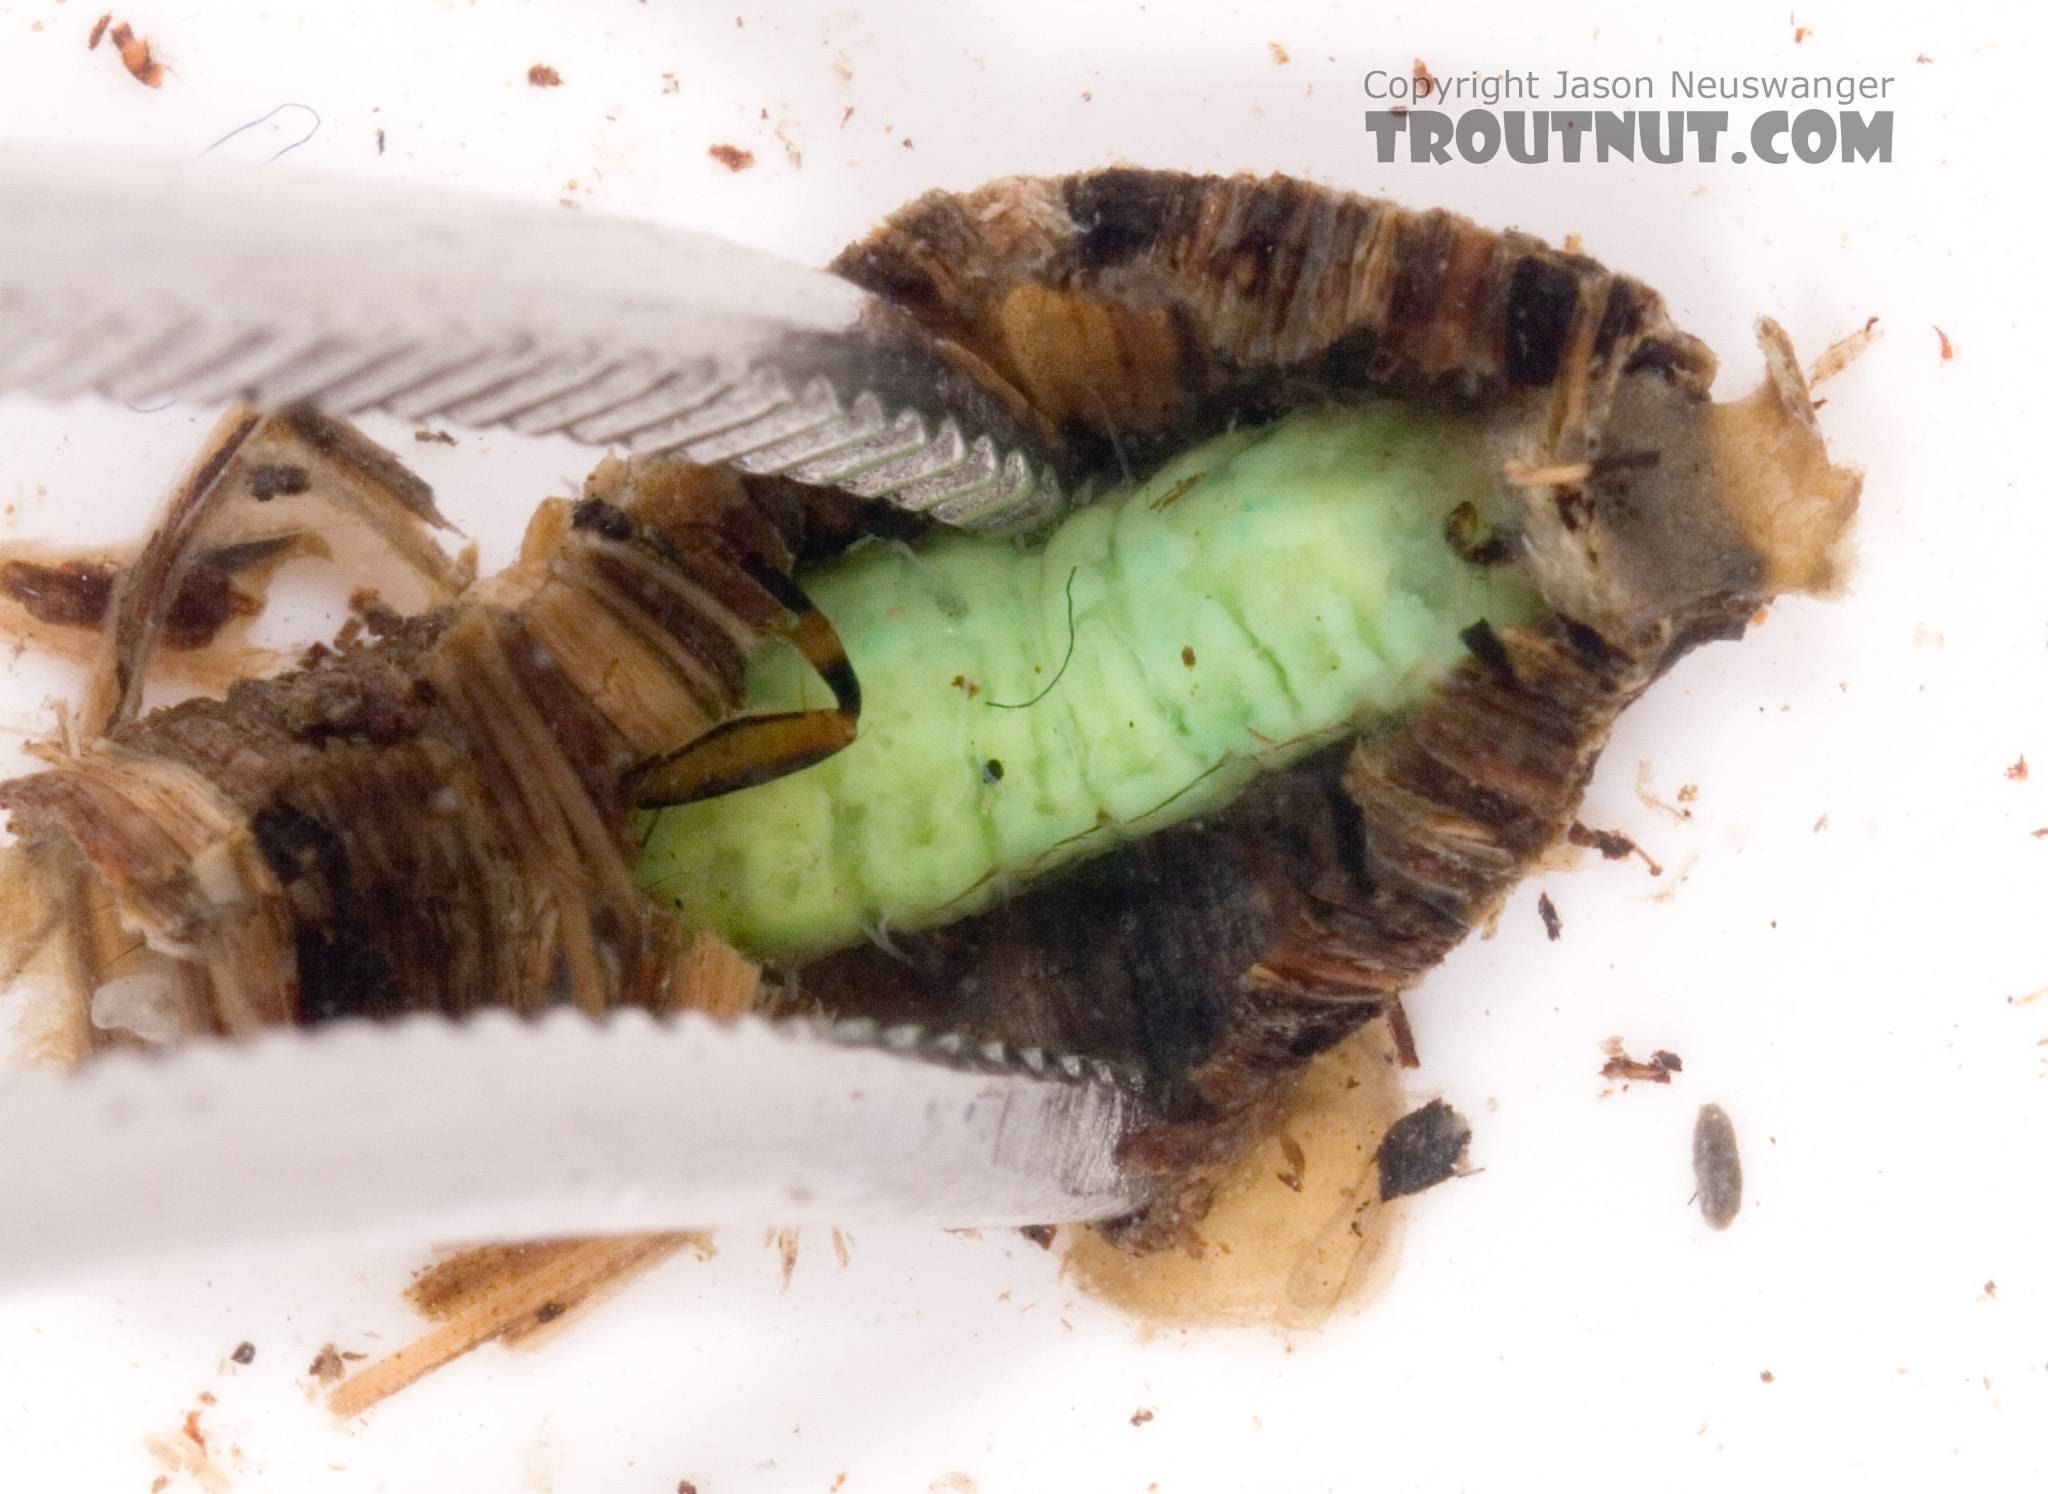 I wasn't so sure I would get this thing out of its case intact, so I took a picture during the extraction attempt.  I did end up knocking a few legs off in the process... oops.  Brachycentrus (Grannoms) Caddisfly Pupa from Cayuta Creek in New York